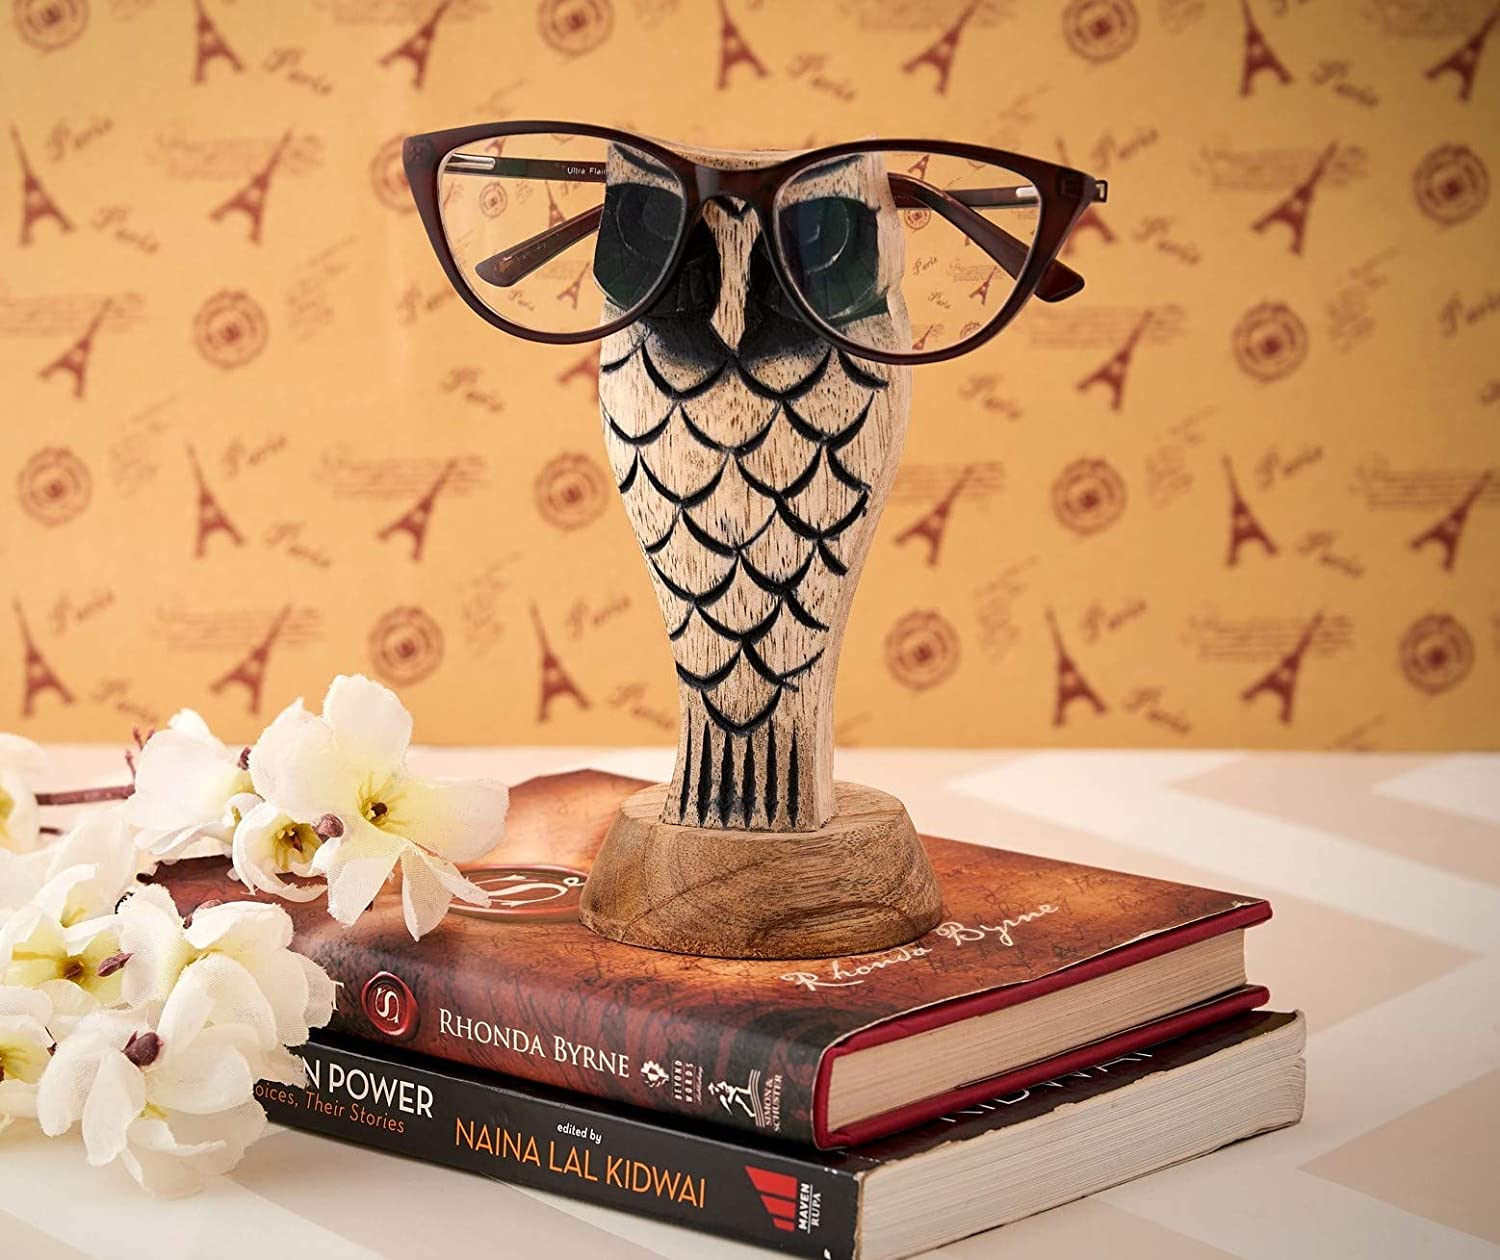 Eximious India Owl Eyeglass Holder Spectacle Holder Wooden Handmade Bedside Display Home and Office Decor Desk Eyeglasses Holder Glasses Stand Gifts for Kids Him Her Mom Dad Eyeglass Retainers for Men